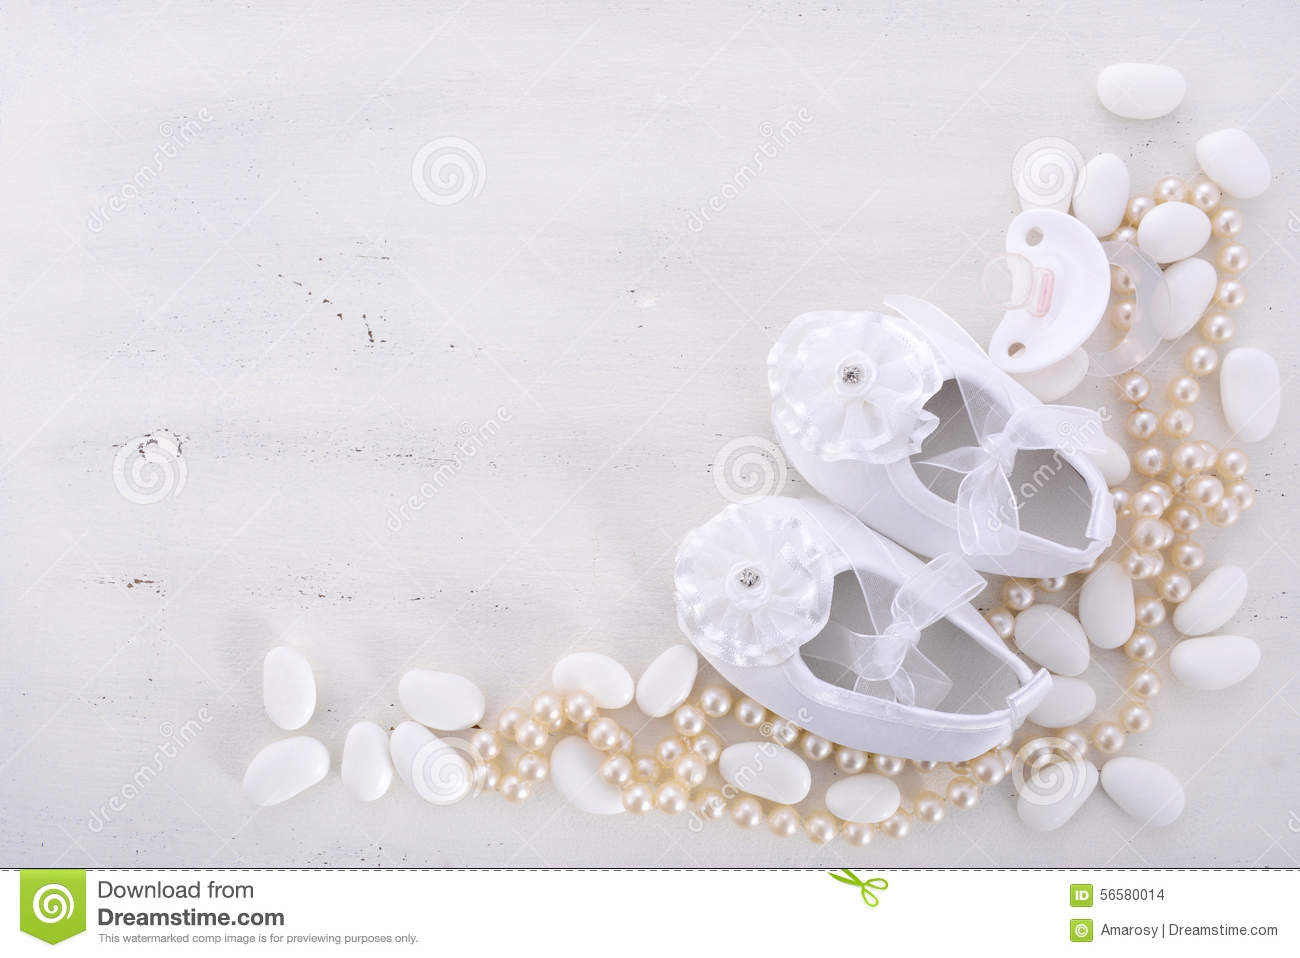 baby shower neutral white background with baby booties pearls and